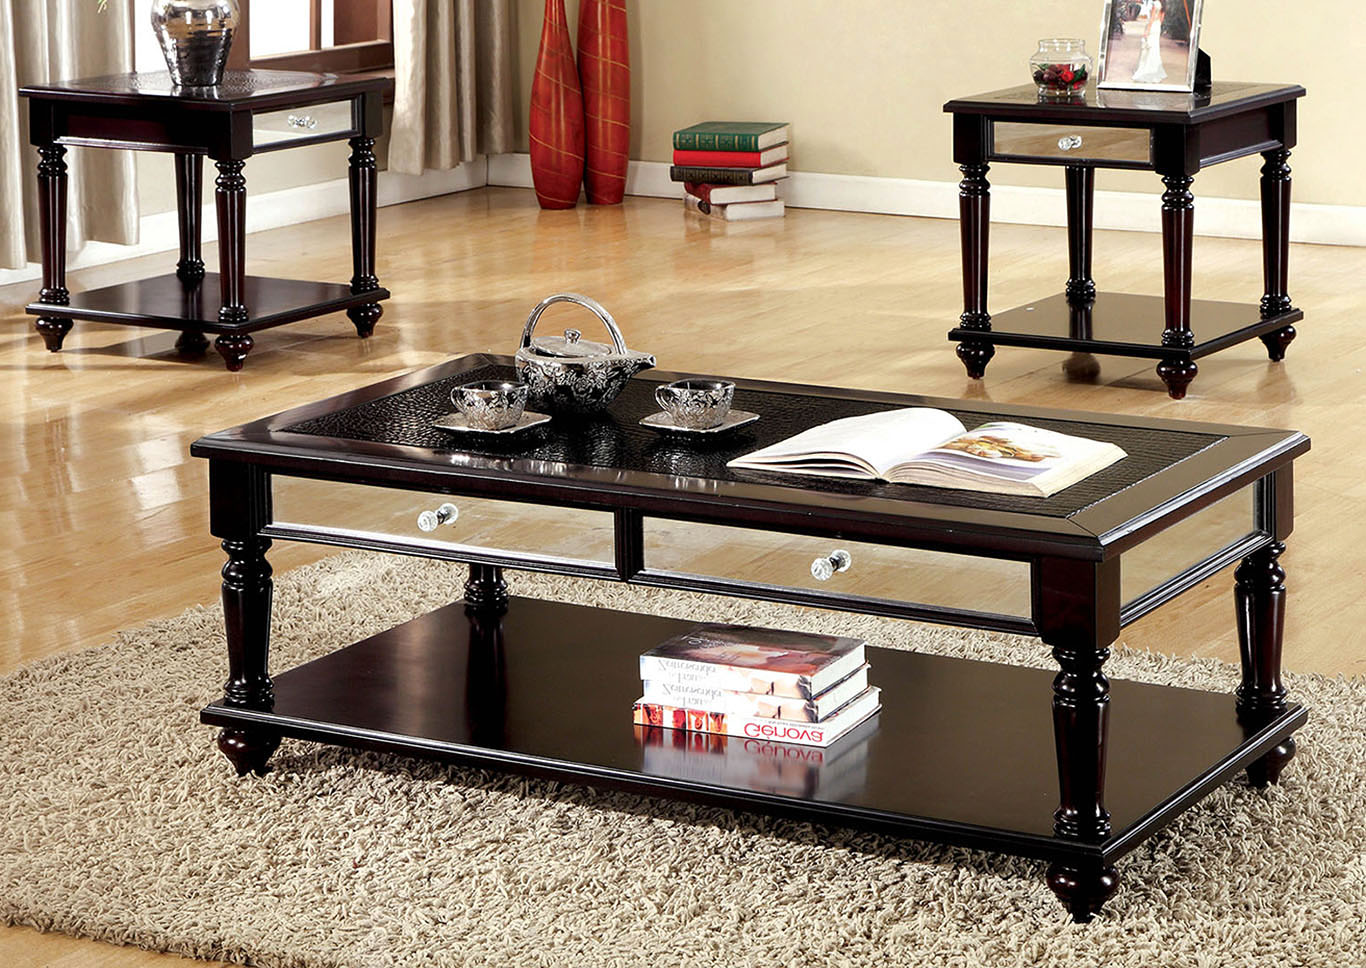 squan furniture horace piece espresso table set crocodile coffee end tables leatherette top mirror panel drawers broyhill storage basket should bedside match ashley black friday